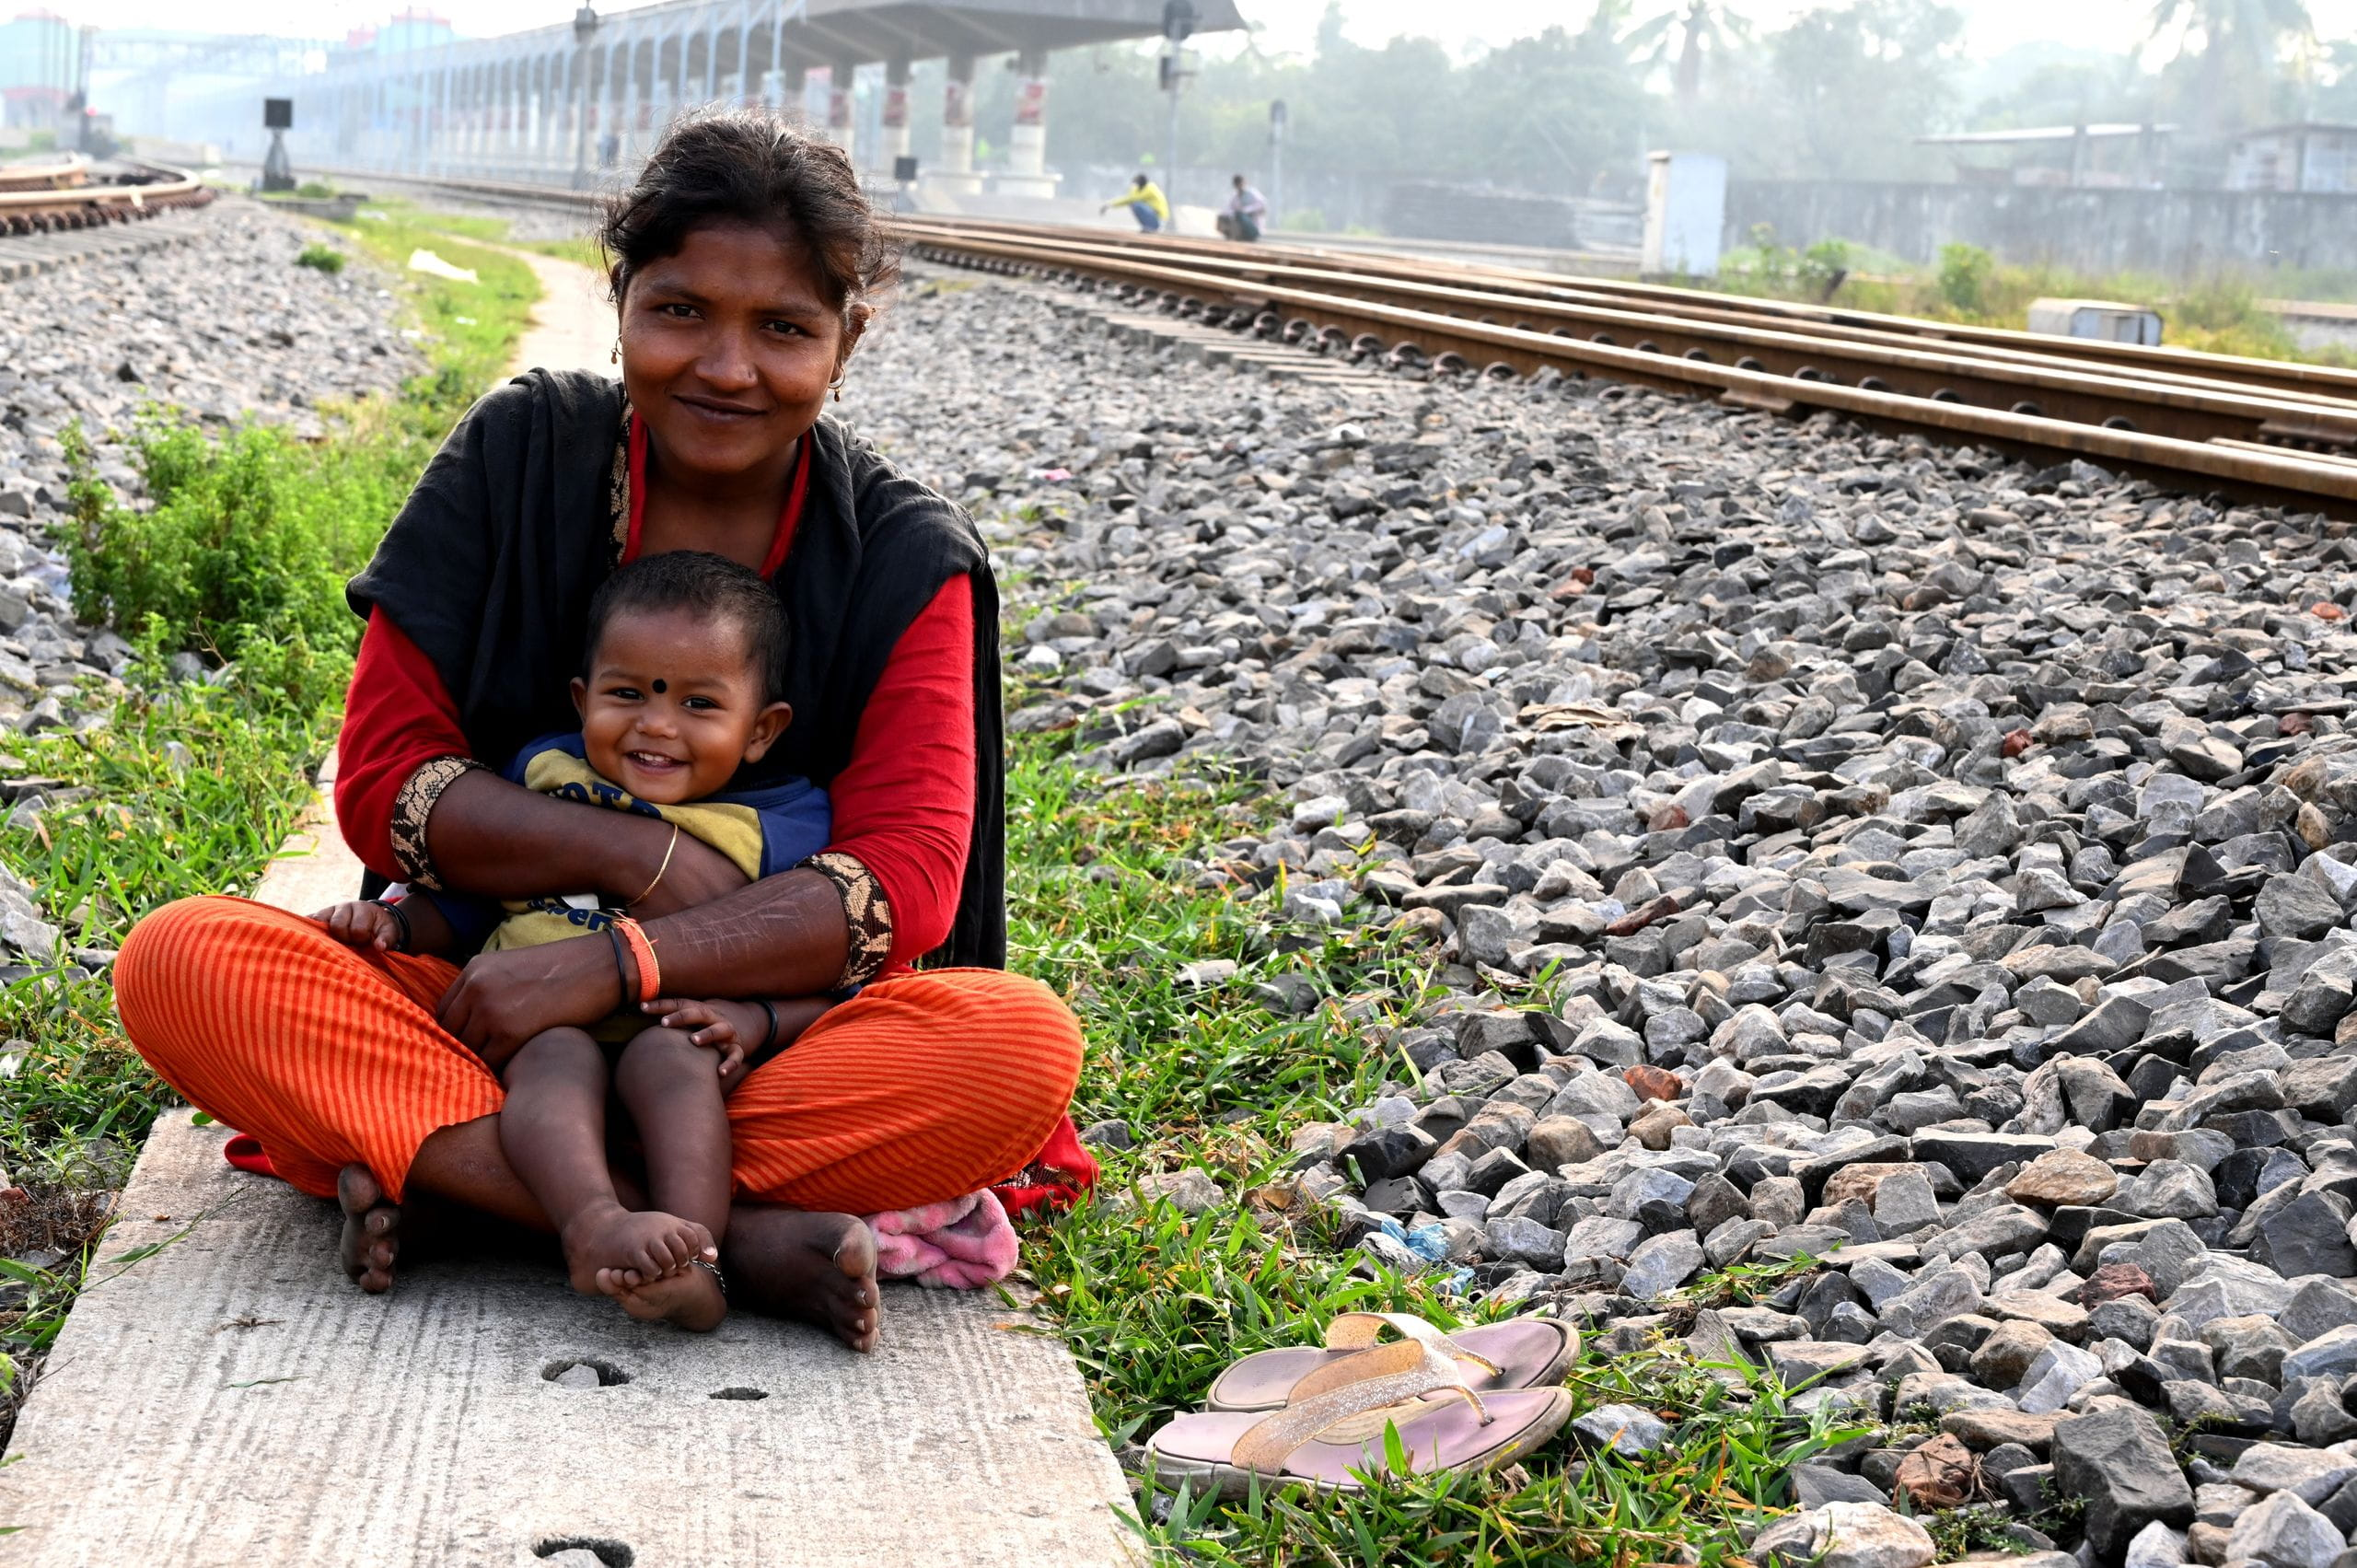 Image of mother and child by train tracks in Bangladesh